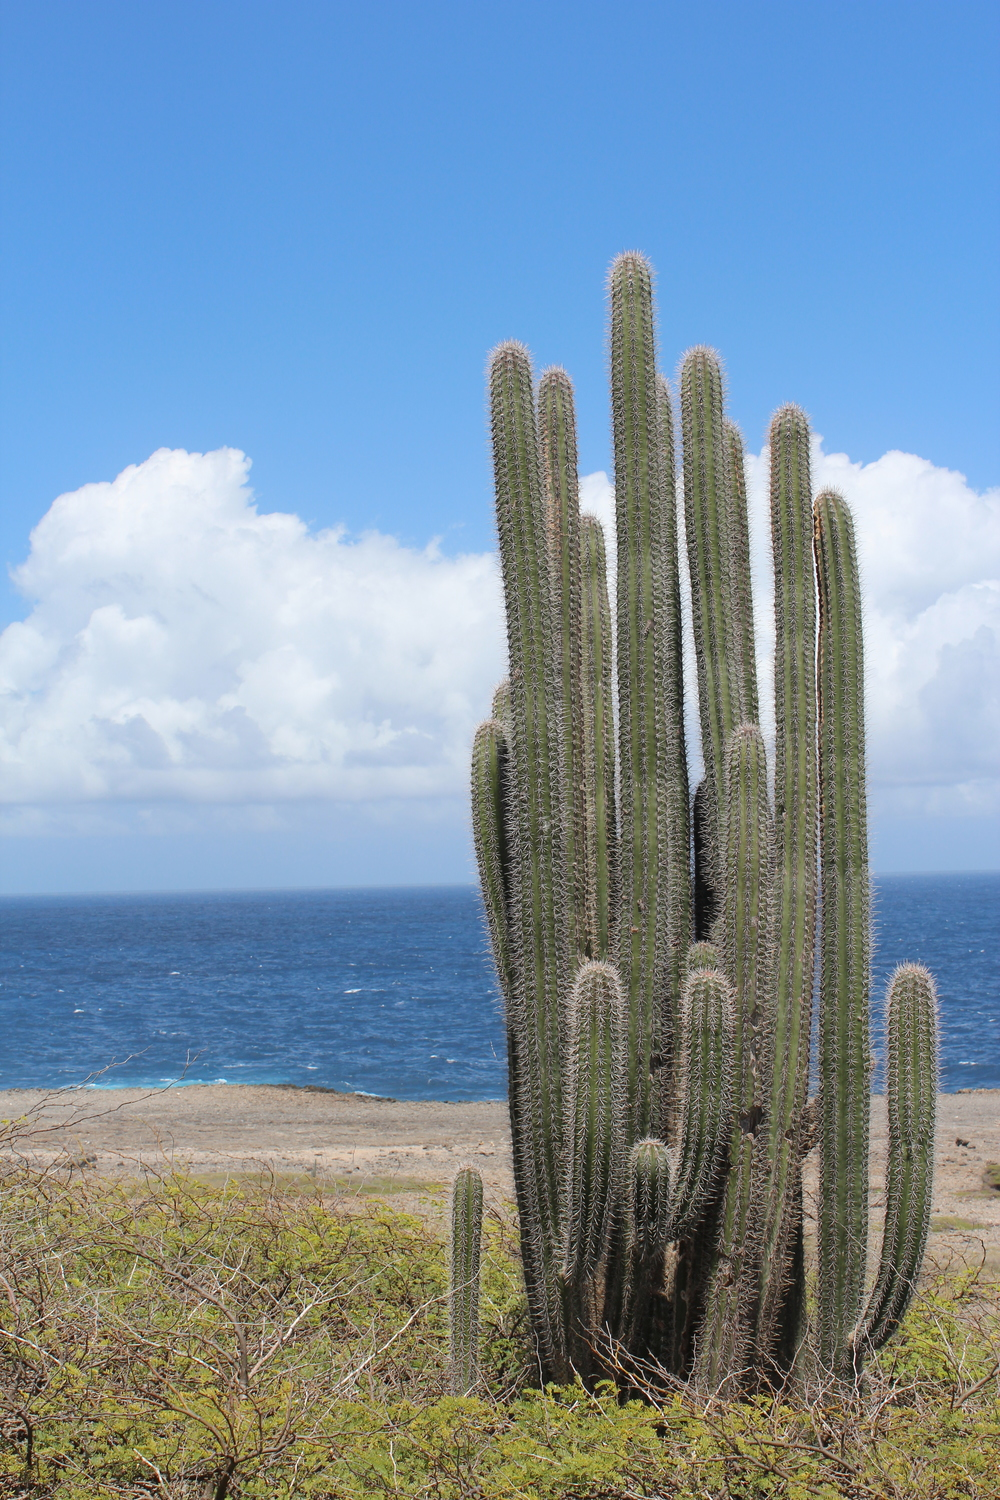 Cactus and the Ocean